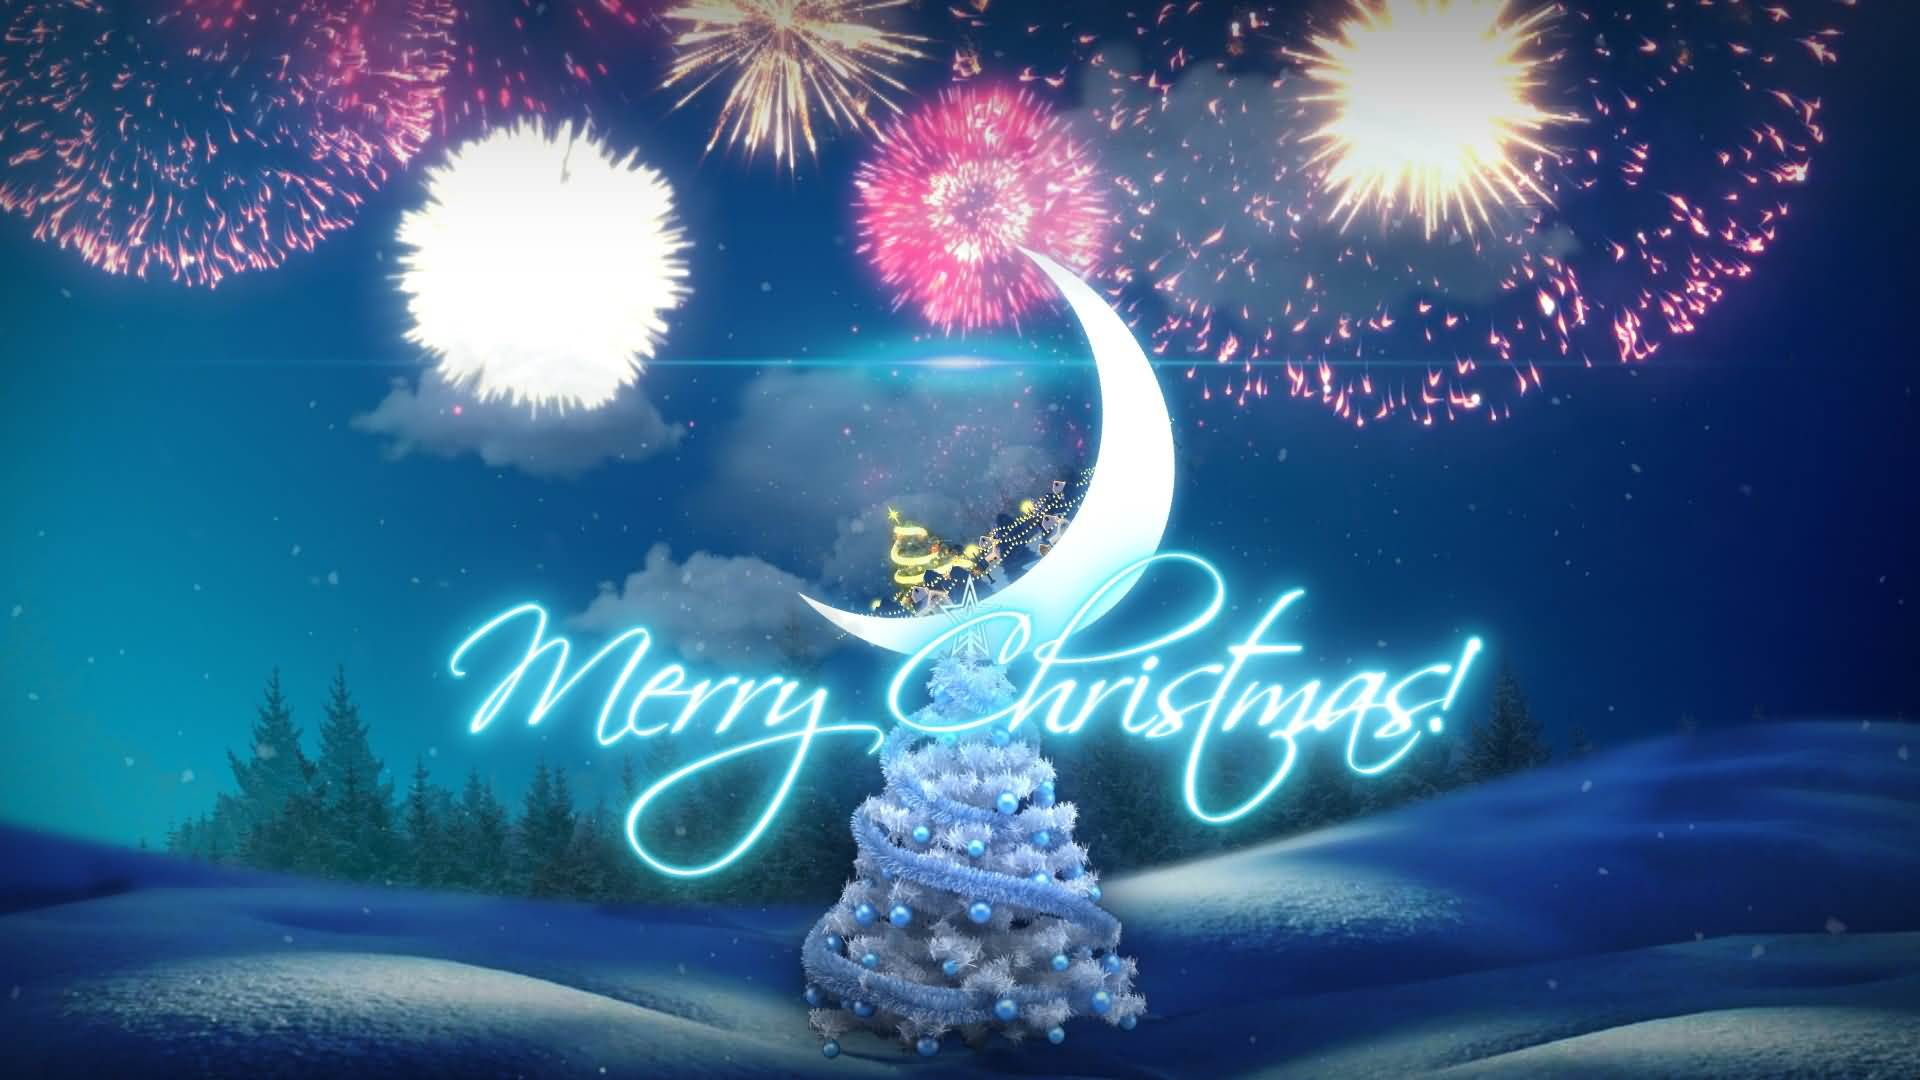 Merry Christmas Clipart  Pictures Of Christmas  YouTube